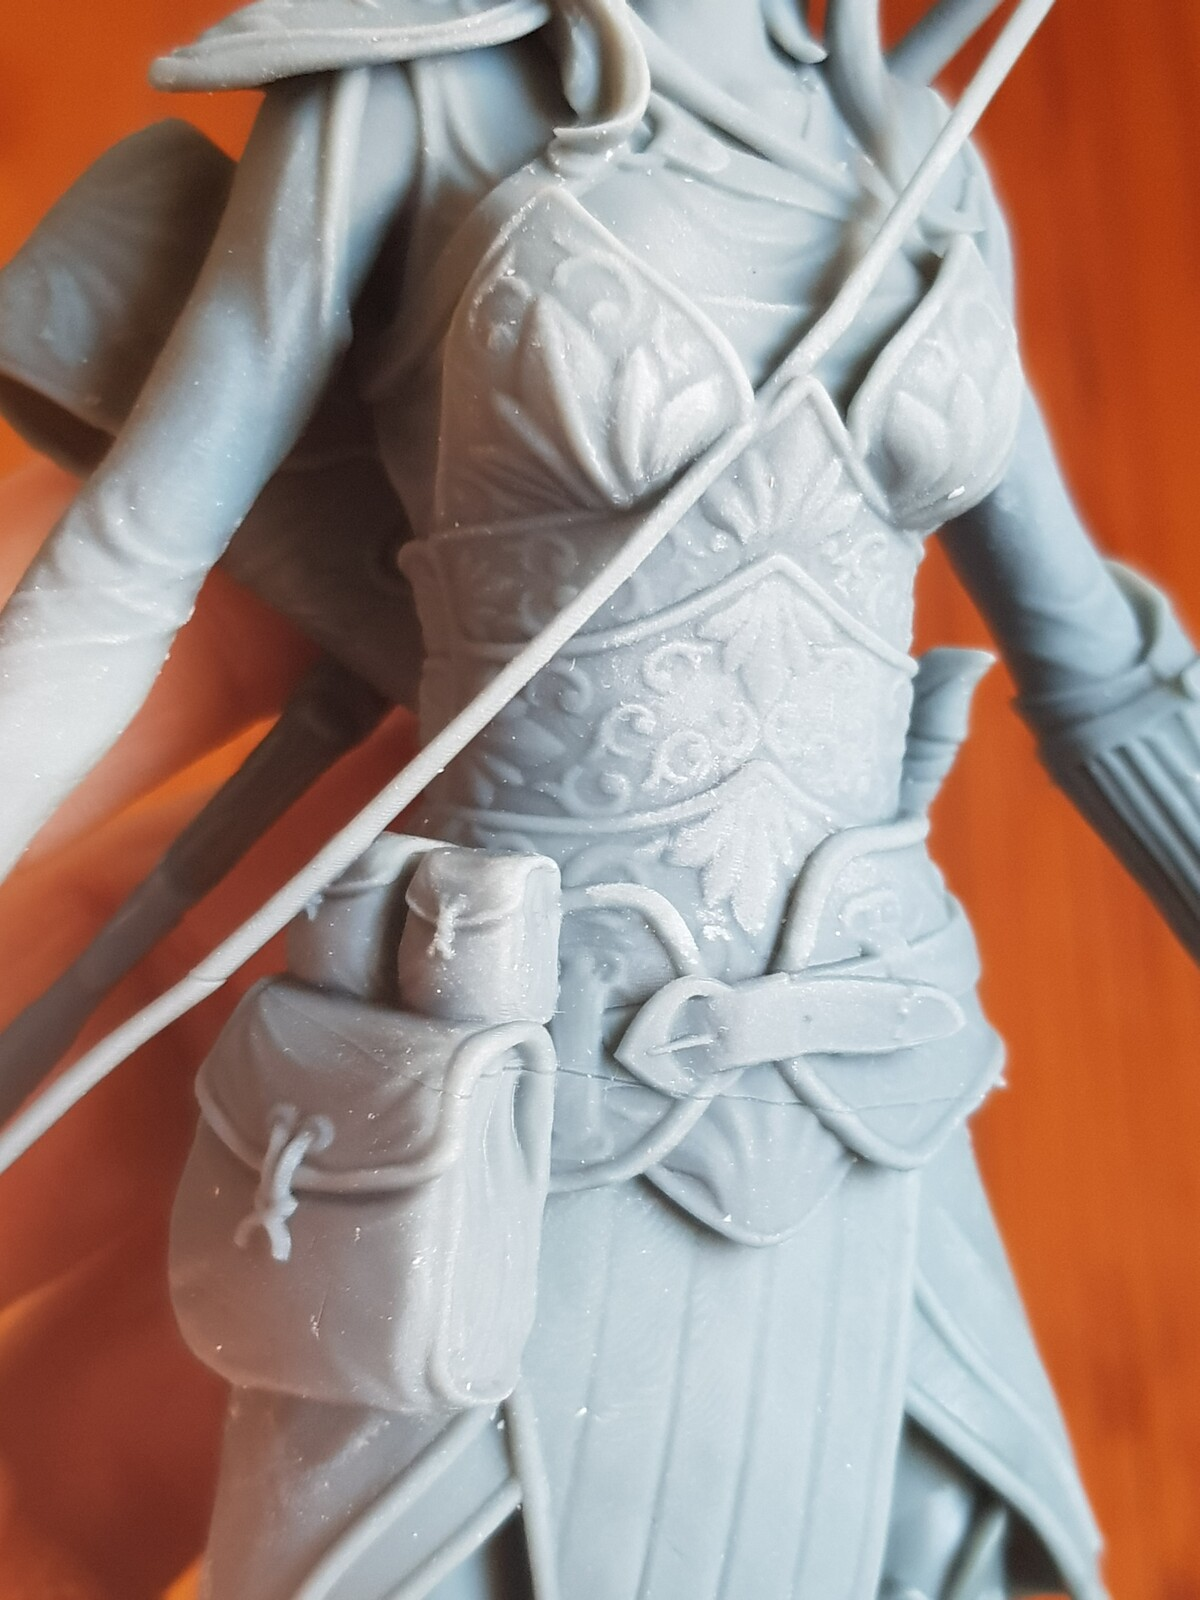 Big 3D print (20cm) in neutral pose